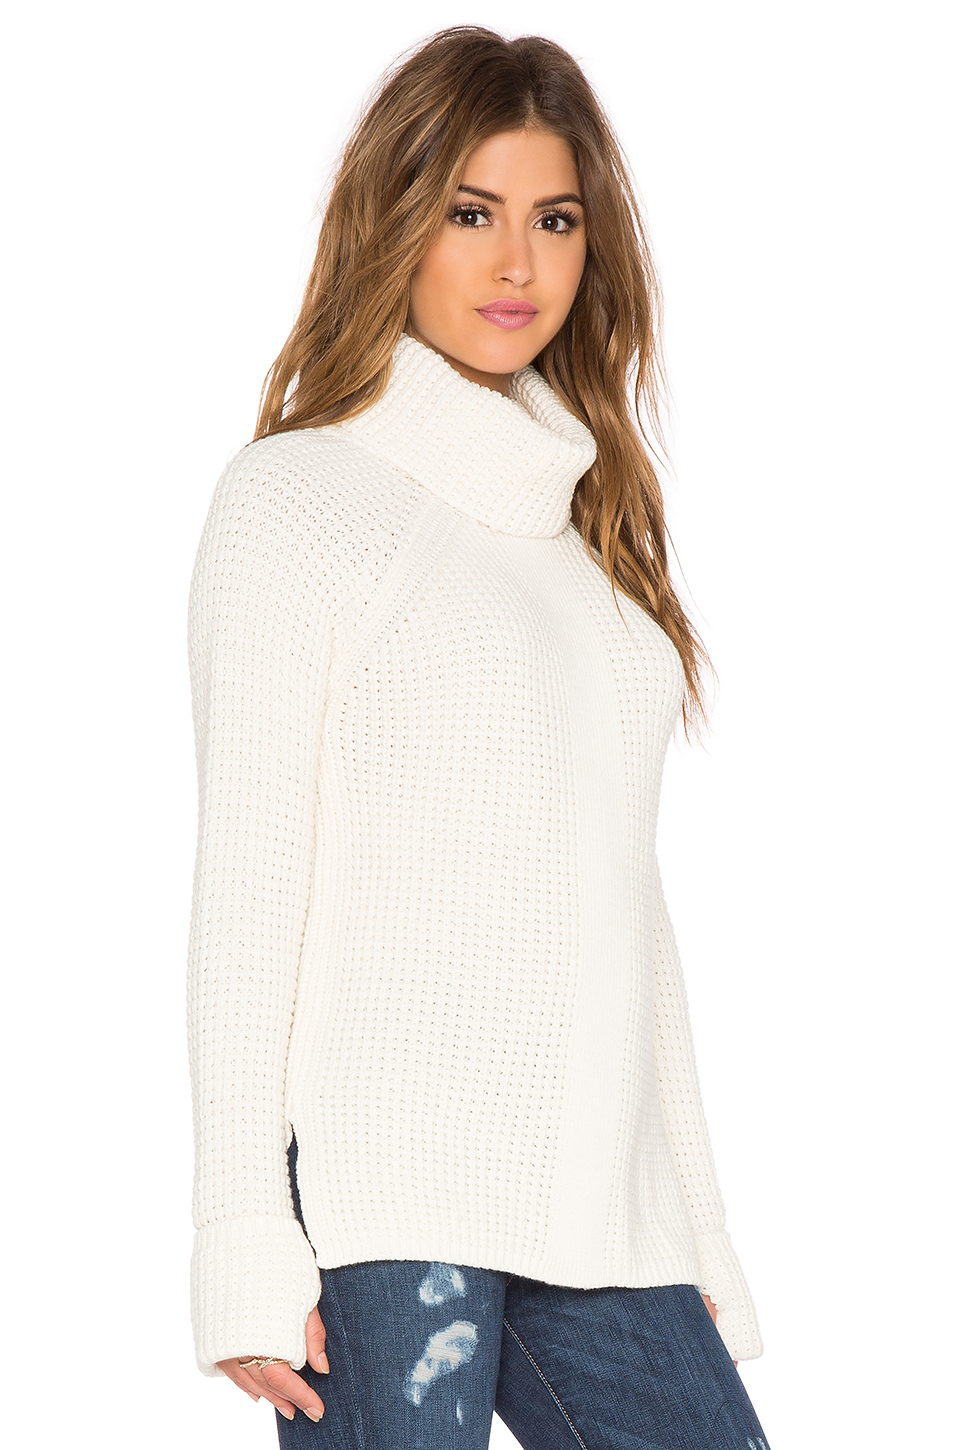 525 america Thumbhole Loose Turtleneck Sweater in White | Lyst